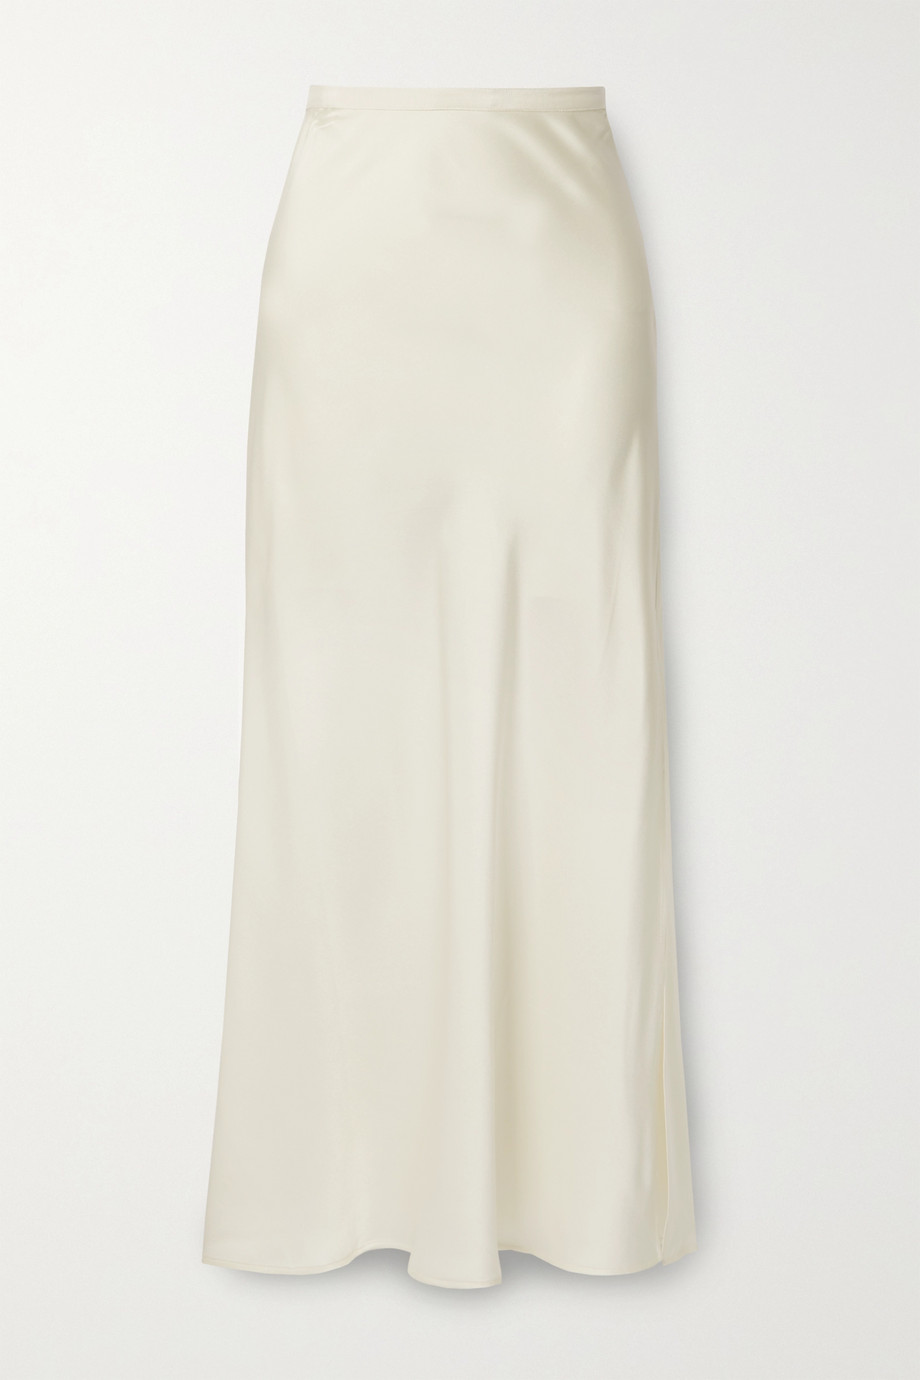 ANINE BING Noel grosgrain-trimmed silk-satin skirt